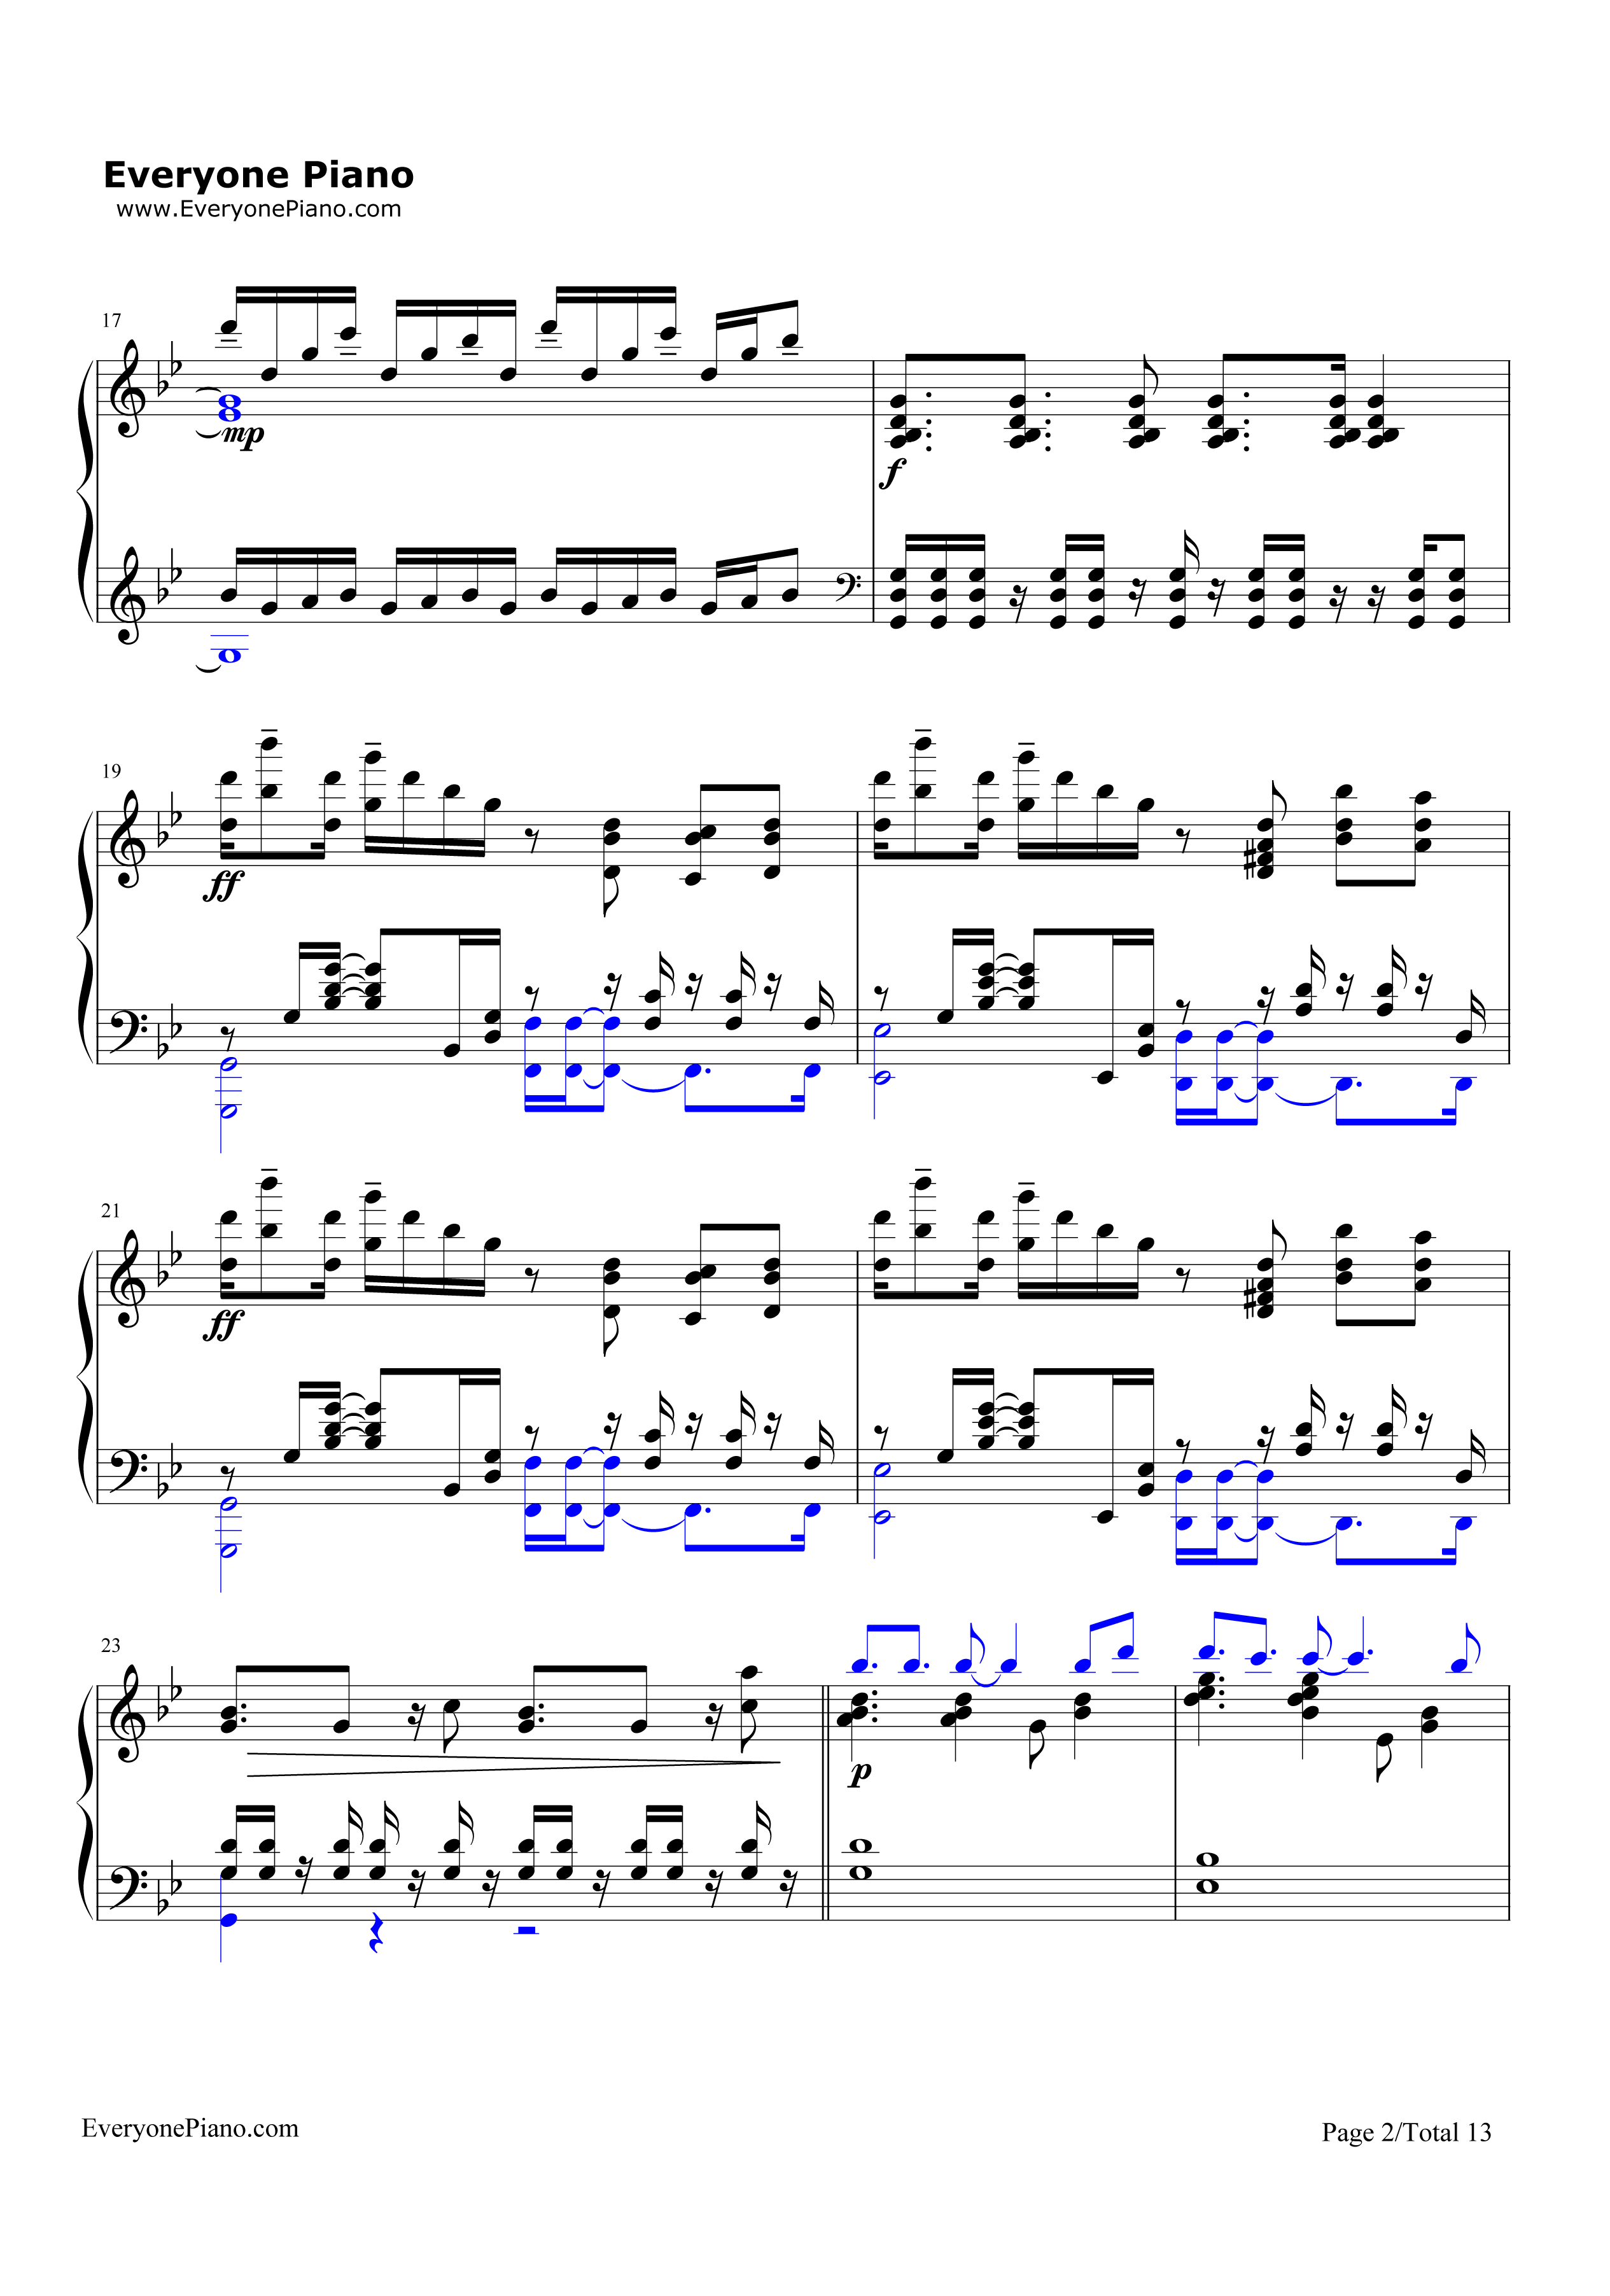 Unravel-Tokyo Ghoul Theme Stave Preview 2-Free Piano Sheet Music u0026 Piano Chords